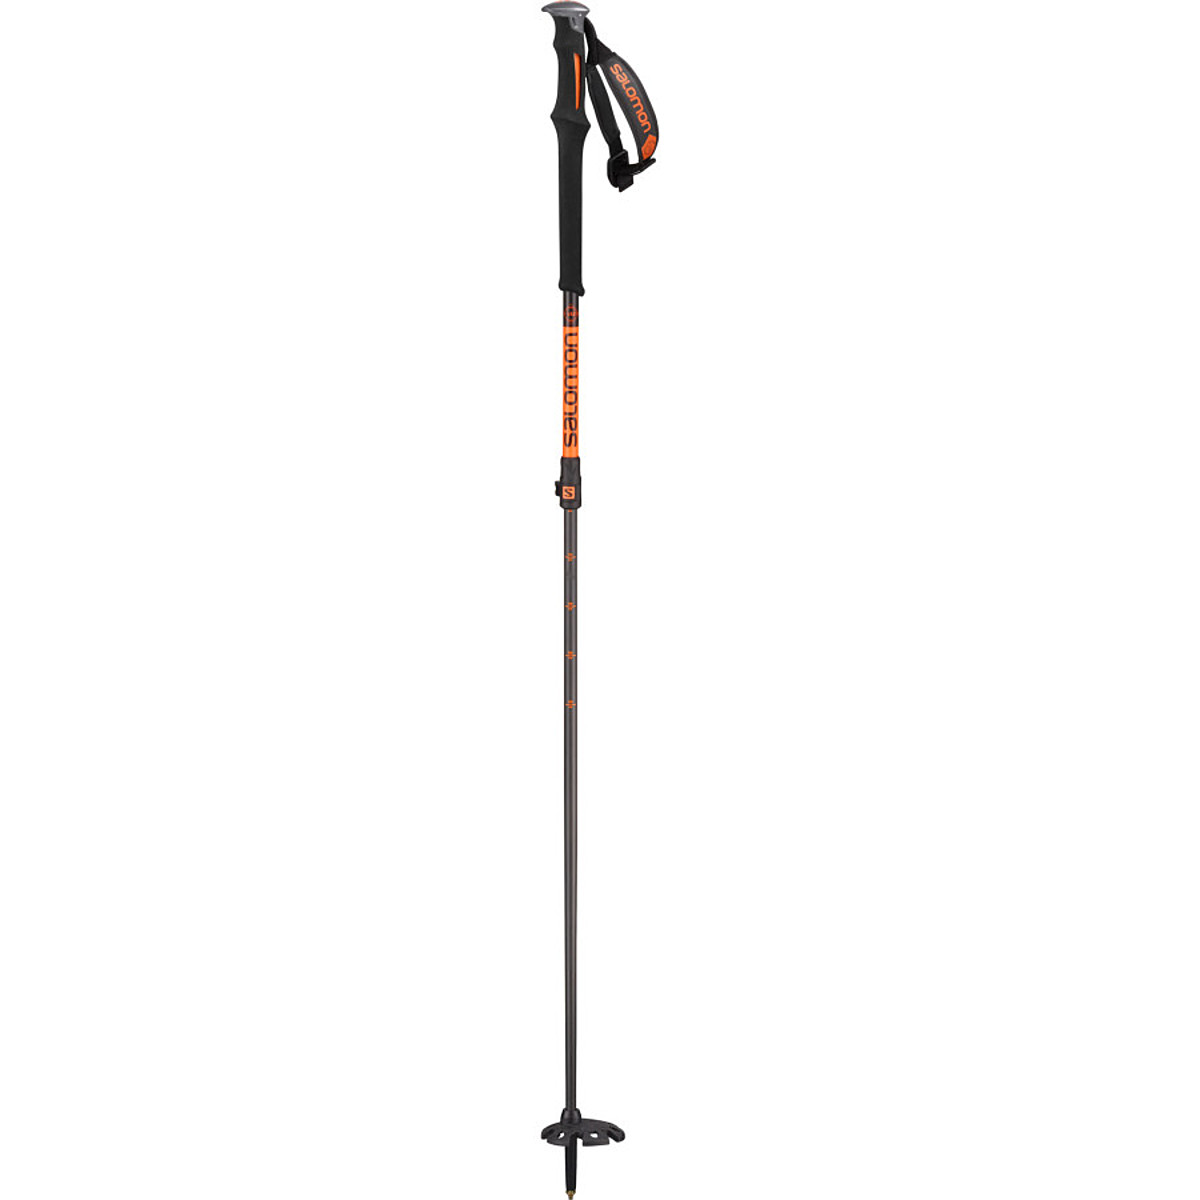 Salomon Q Vario Carbon Ski Pole